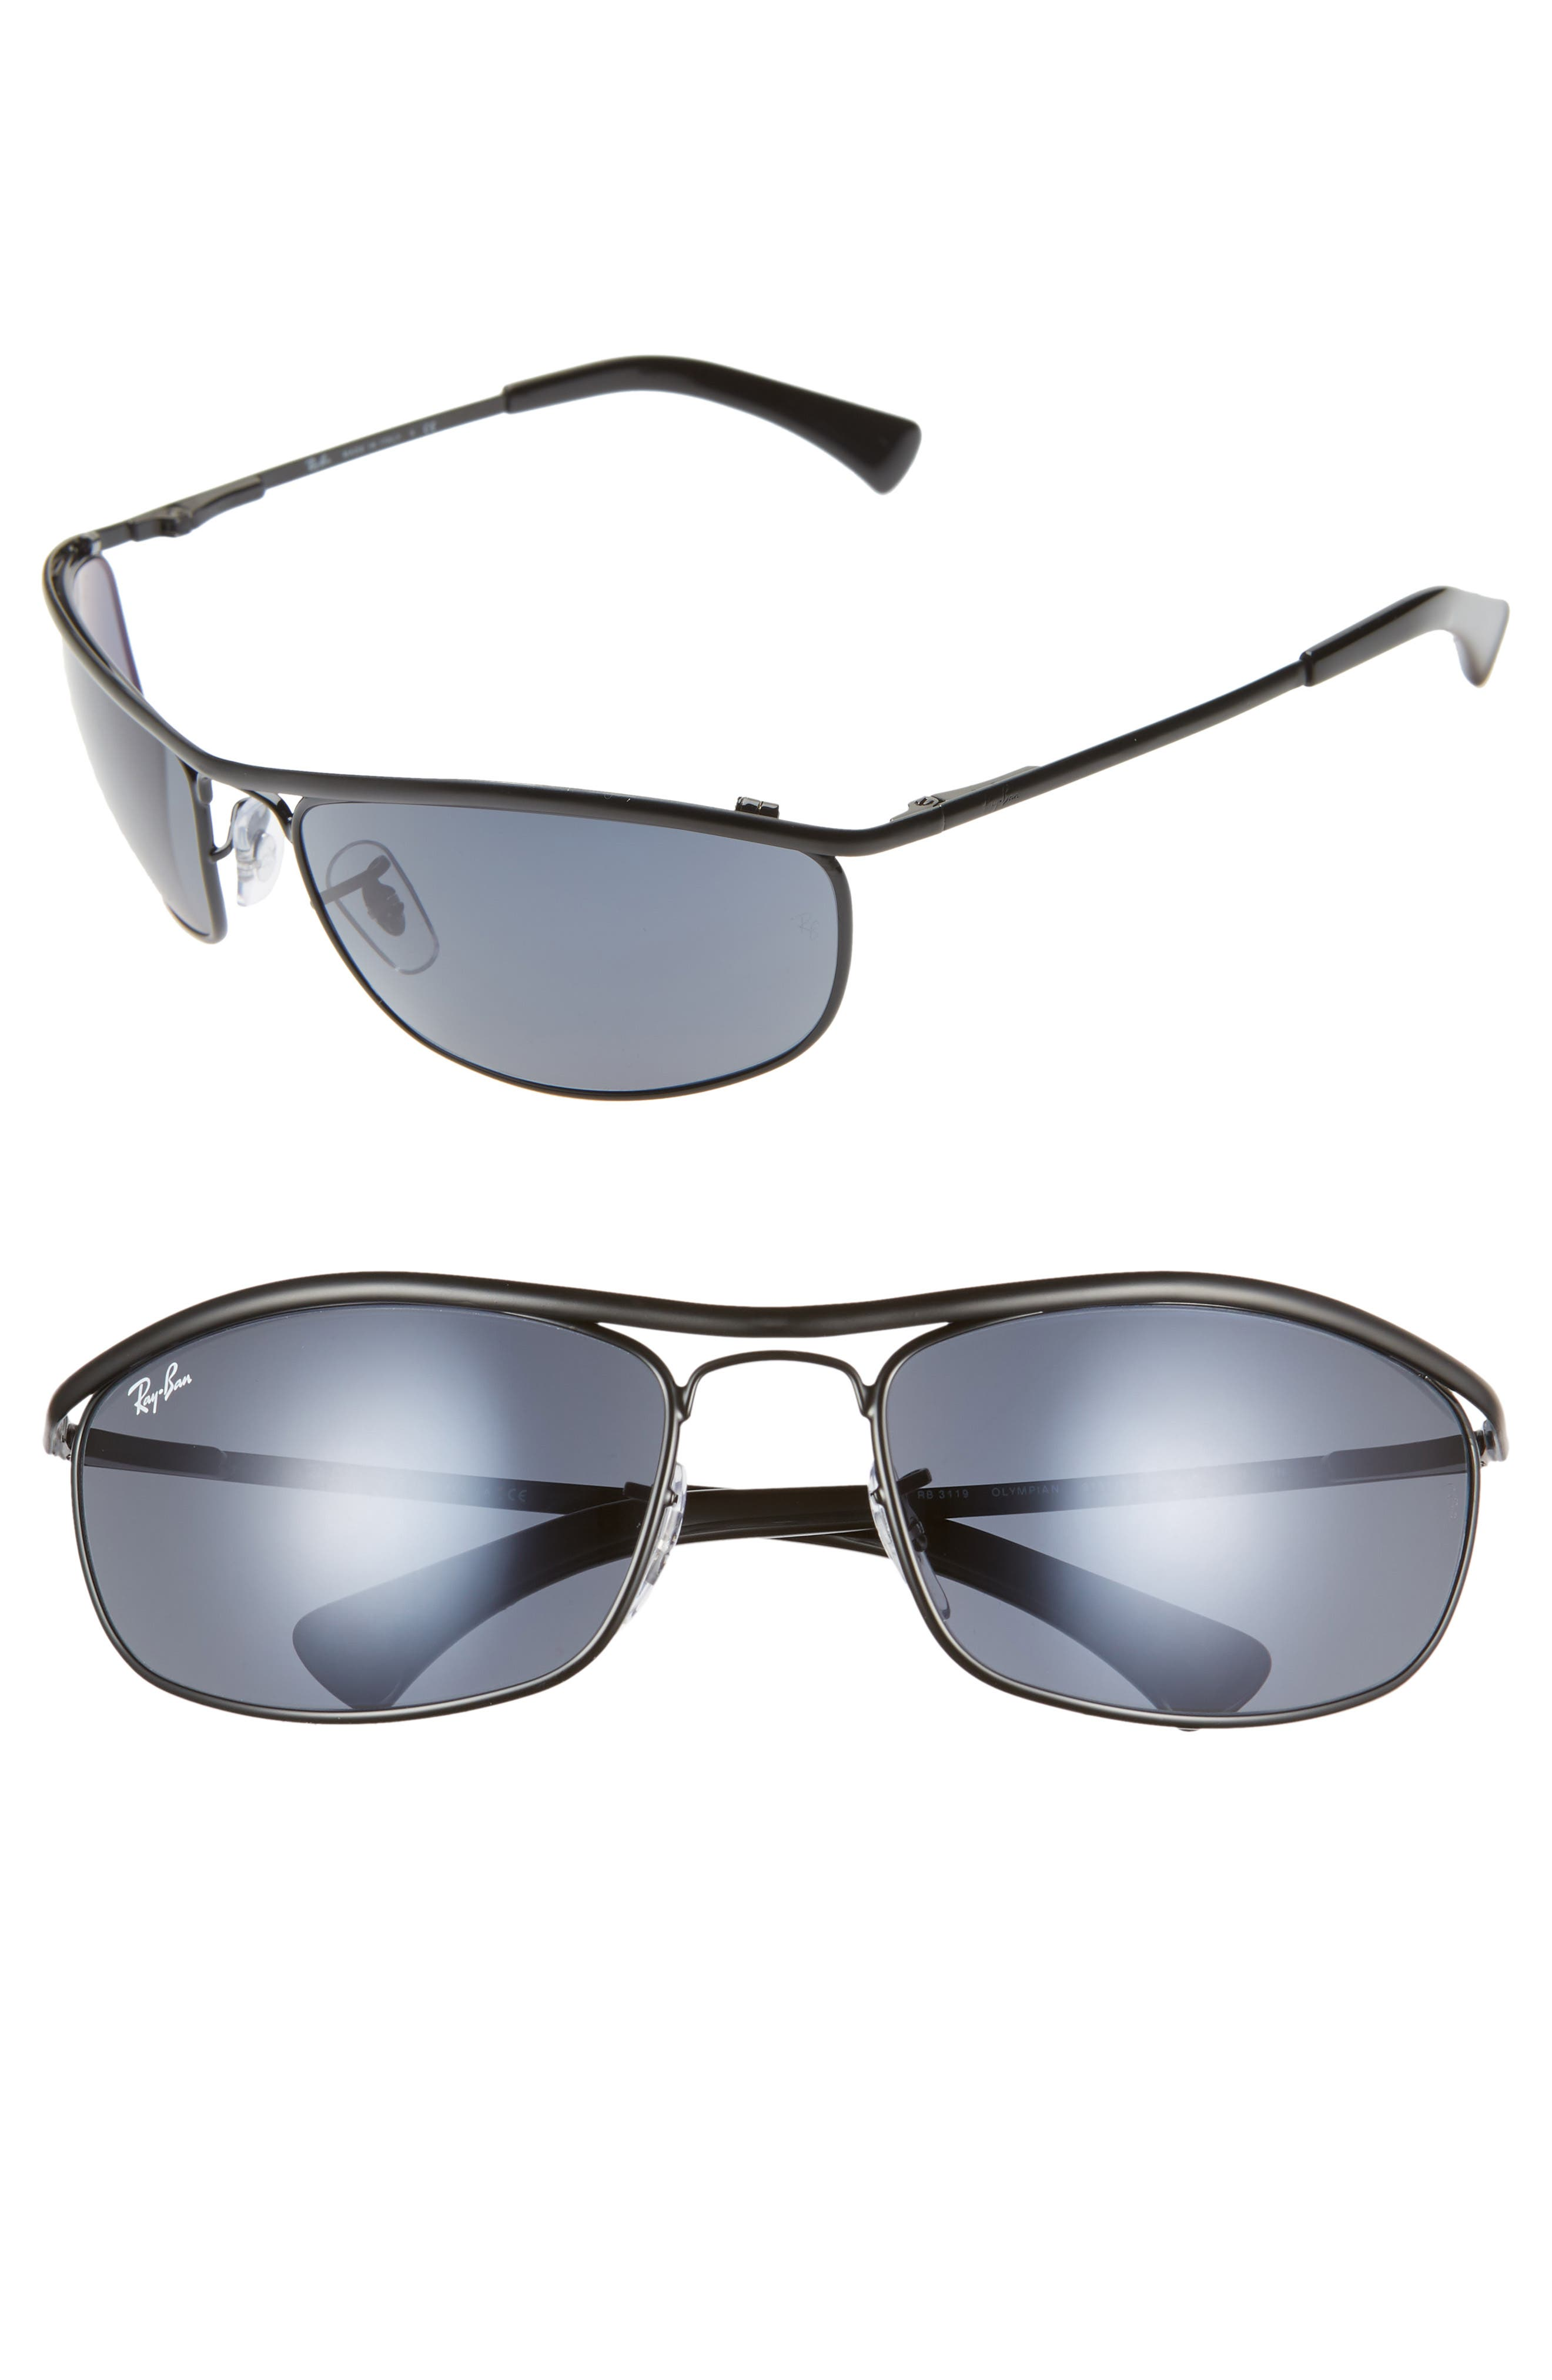 Ray-Ban 62Mm Aviator Shield Sunglasses - Black/ Blue Solid